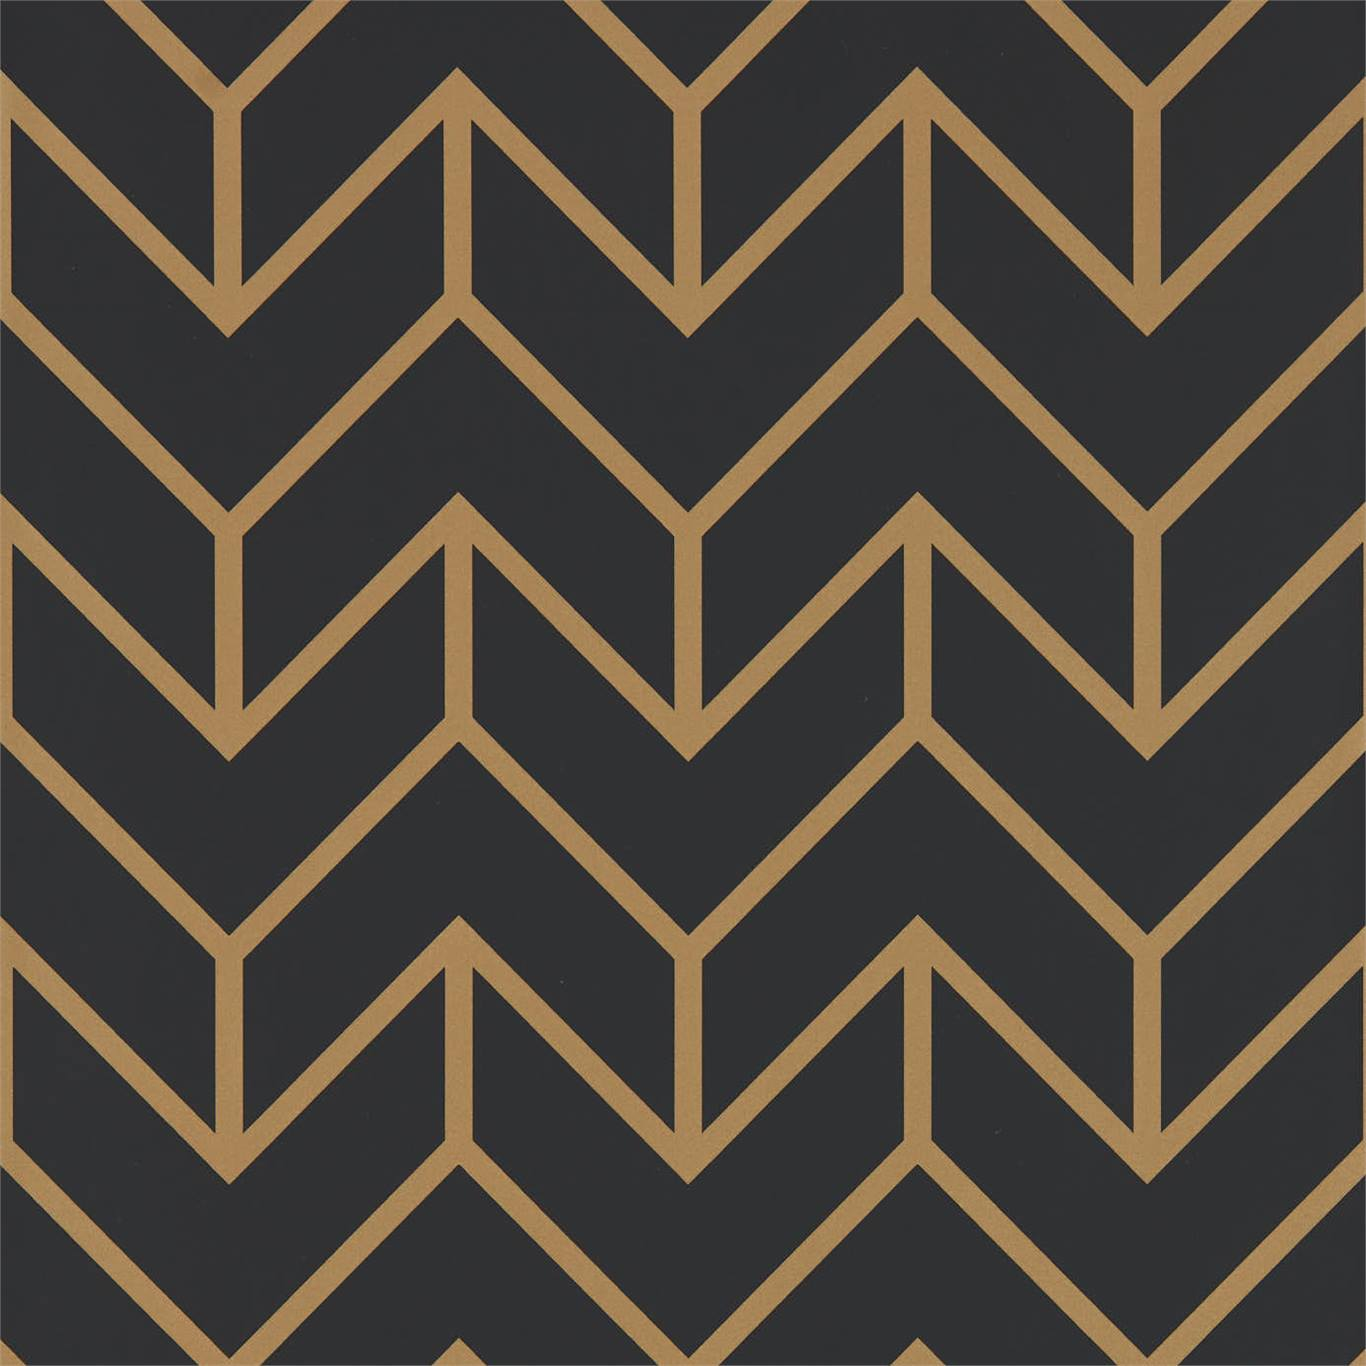 Tessellation Graphite Gold Wallpaper, Harlequin, Momentum 5, Wall to Wall Wallpaper | Contemporary Wallpaper Online NZ